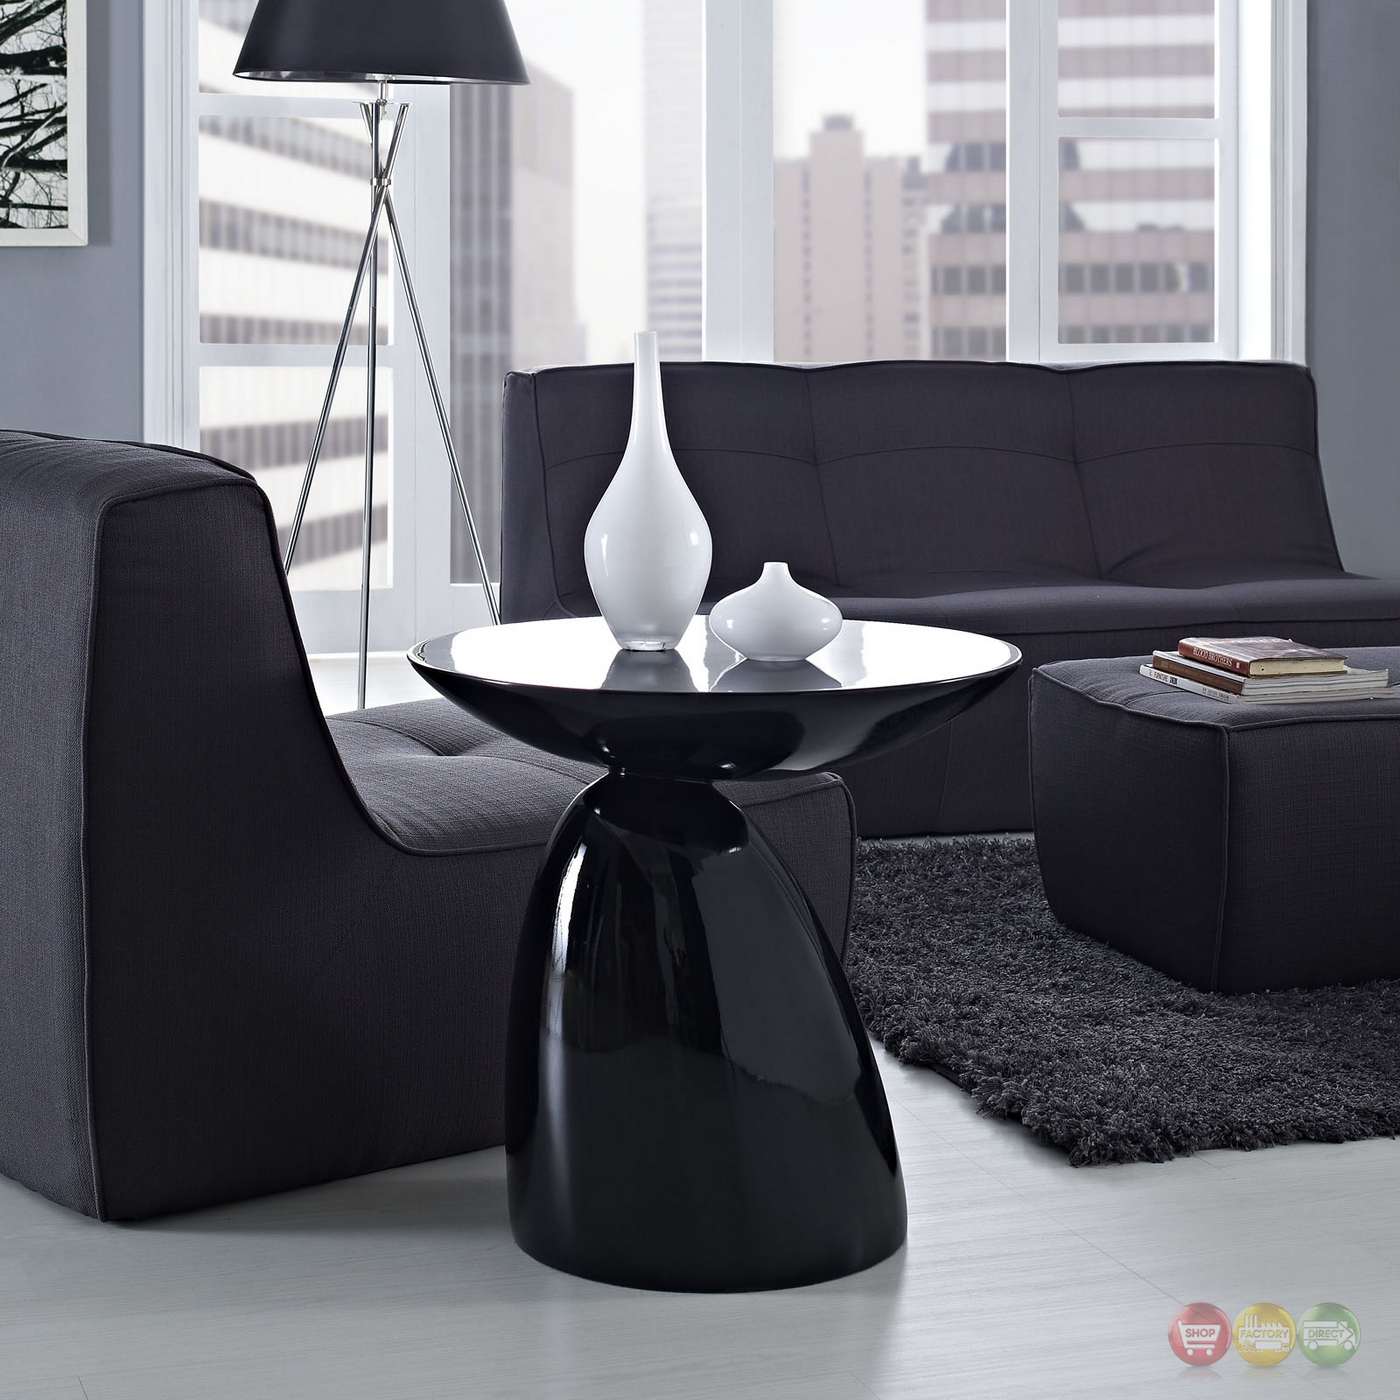 Stylish Table Flow Ultra Modern High Gloss Round End Table With Stylish